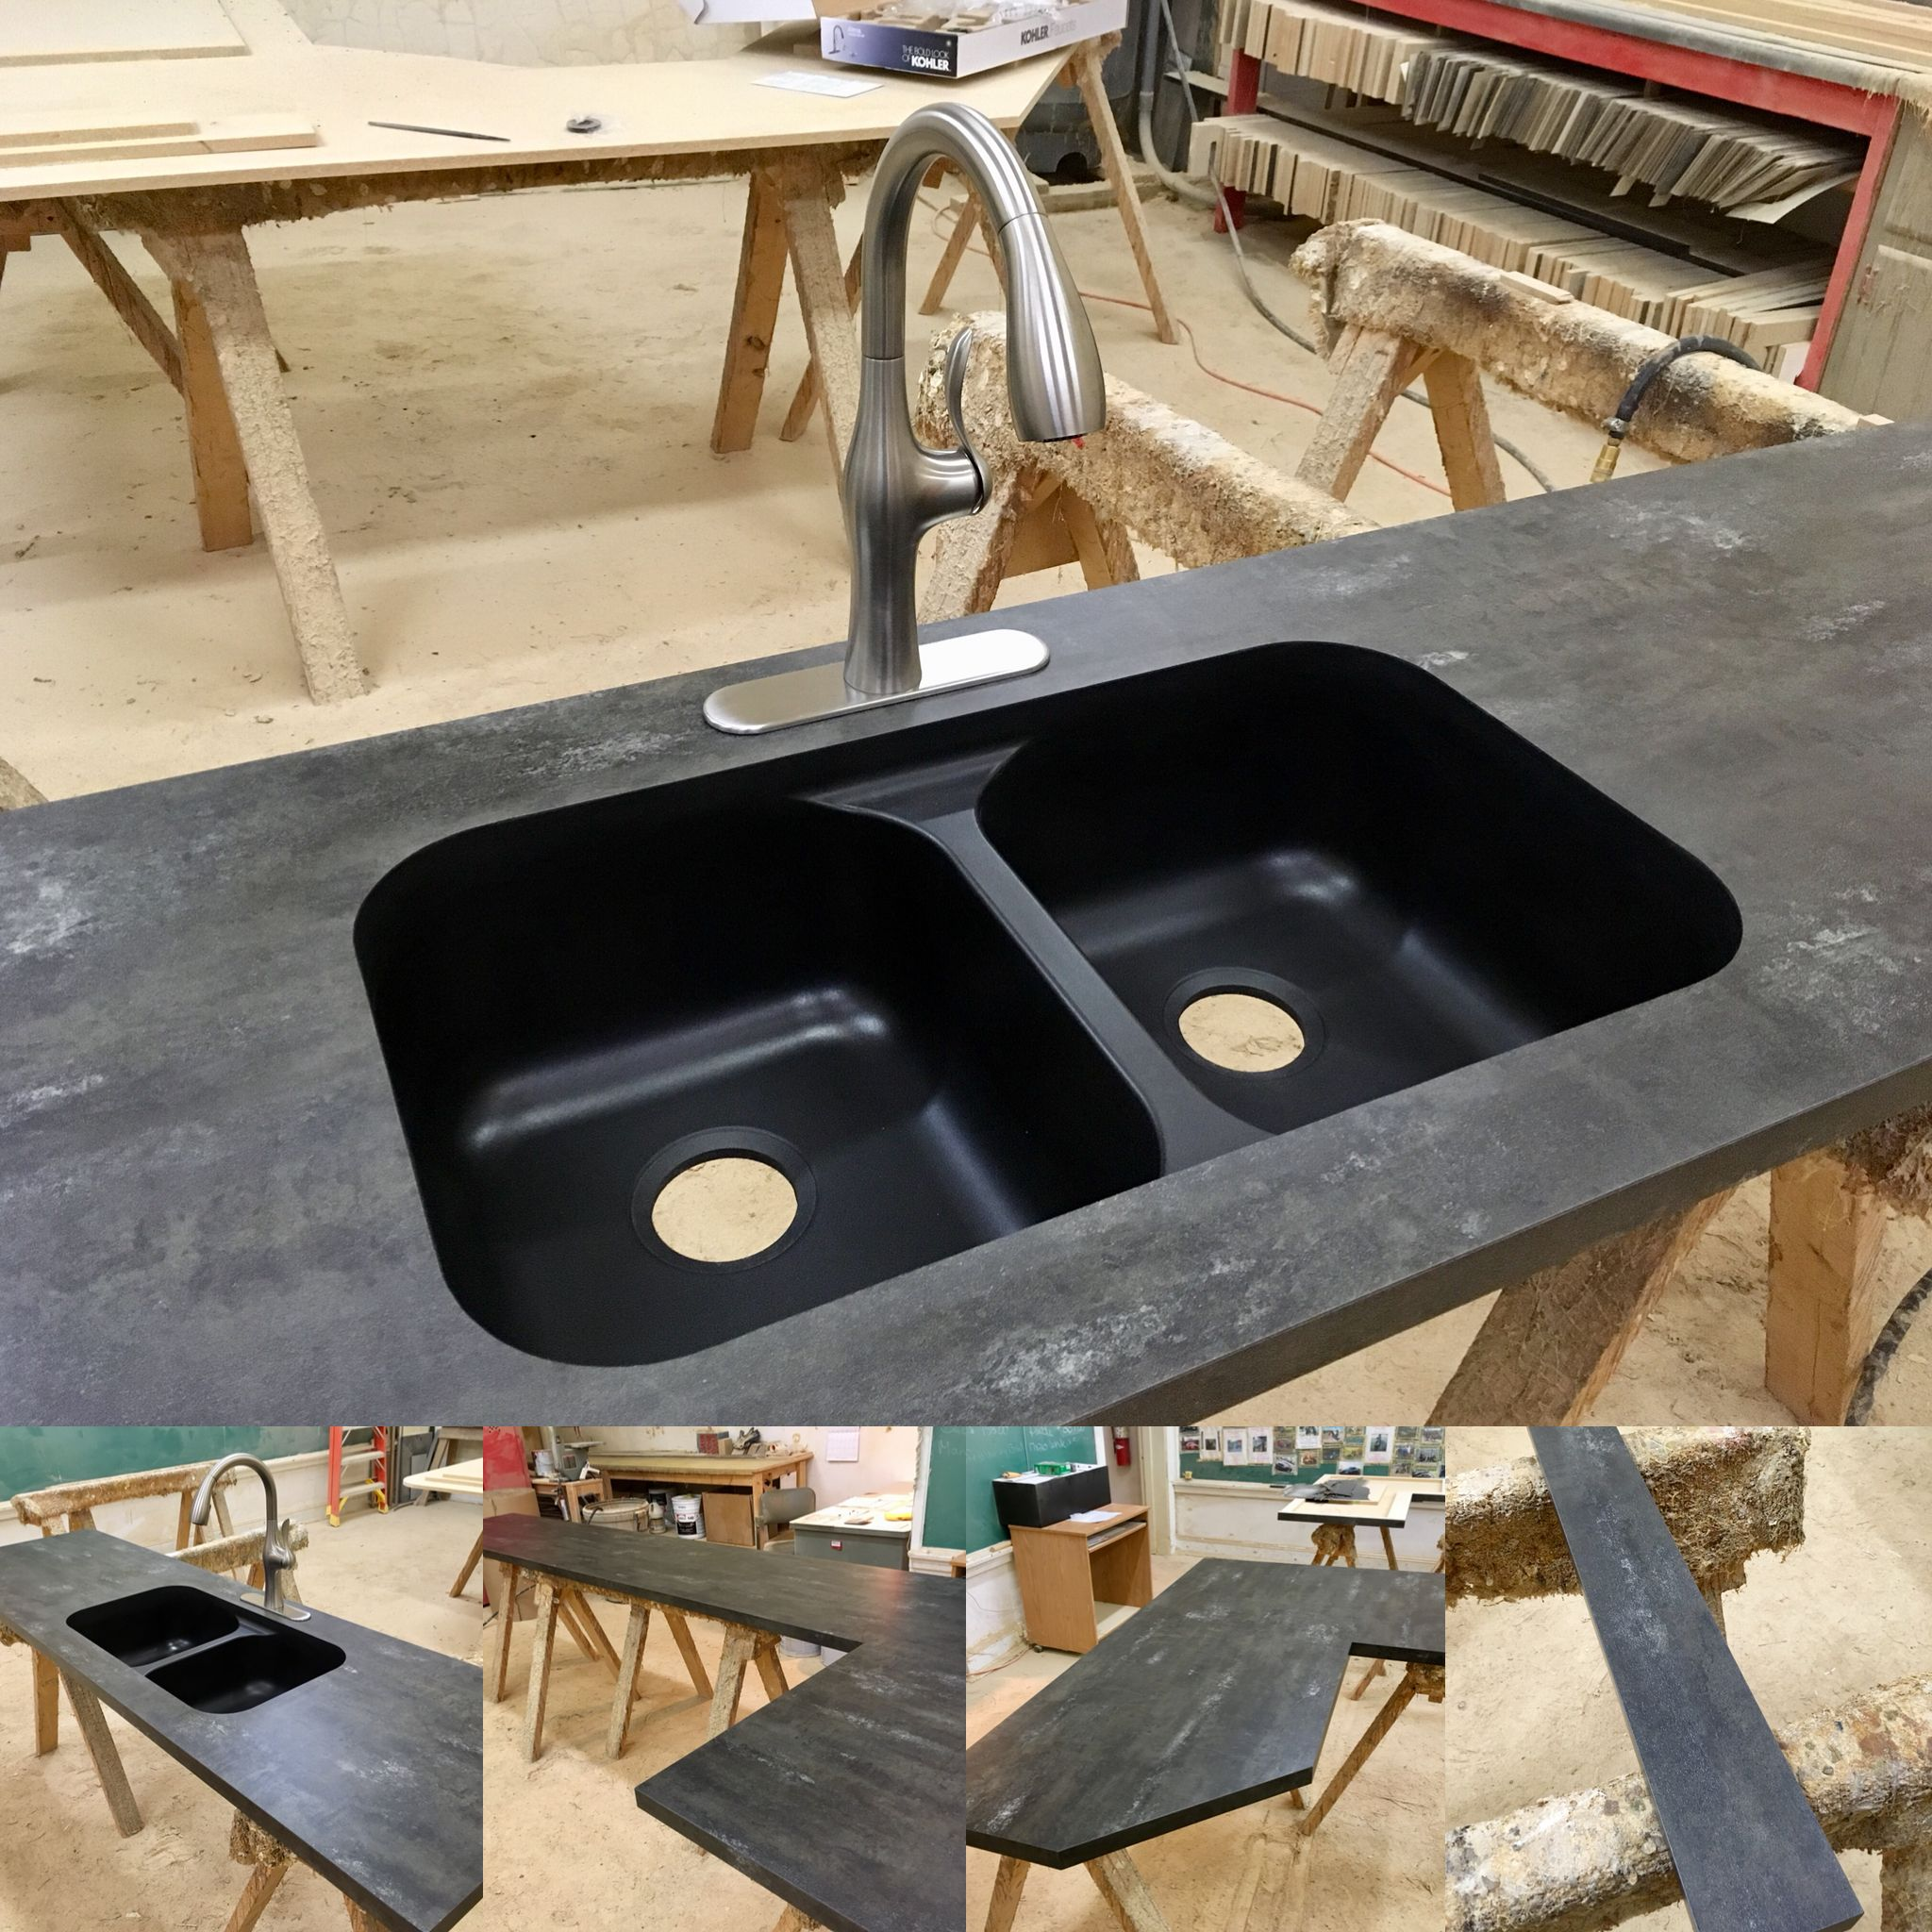 Unique Laminate Countertops: This Countertop Is Absolutely Stunning! All Custom